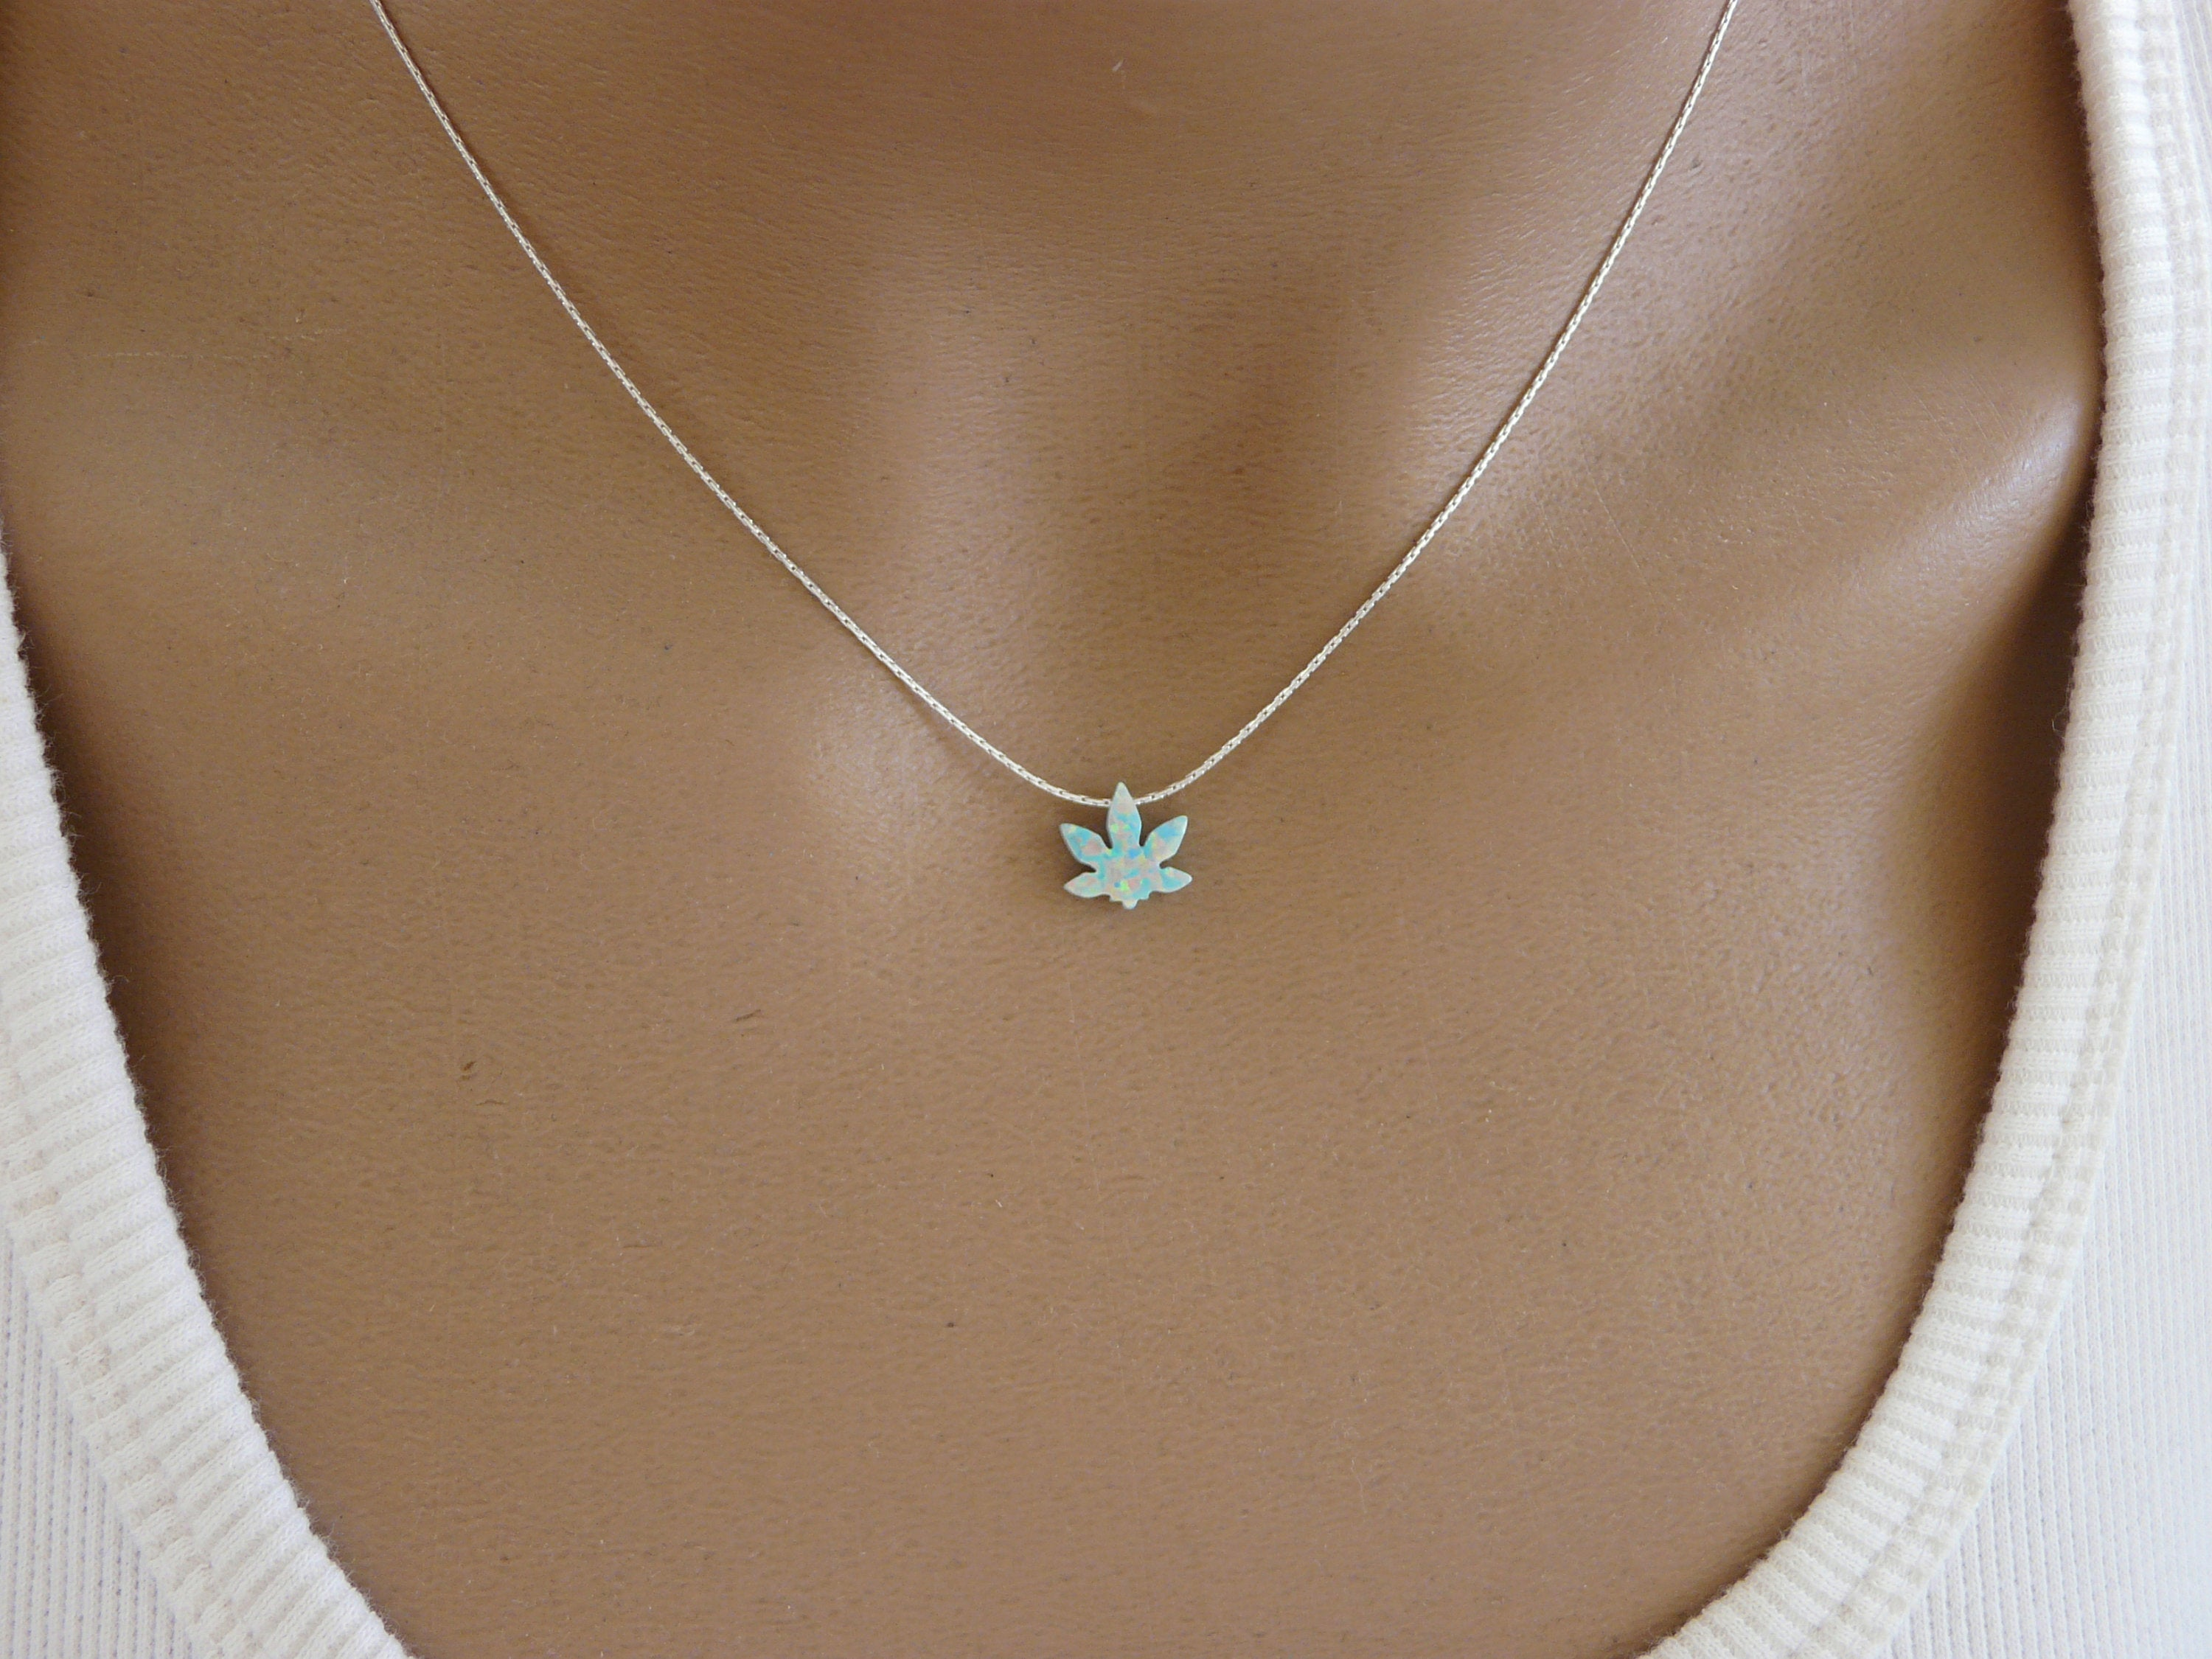 Marijuana necklace